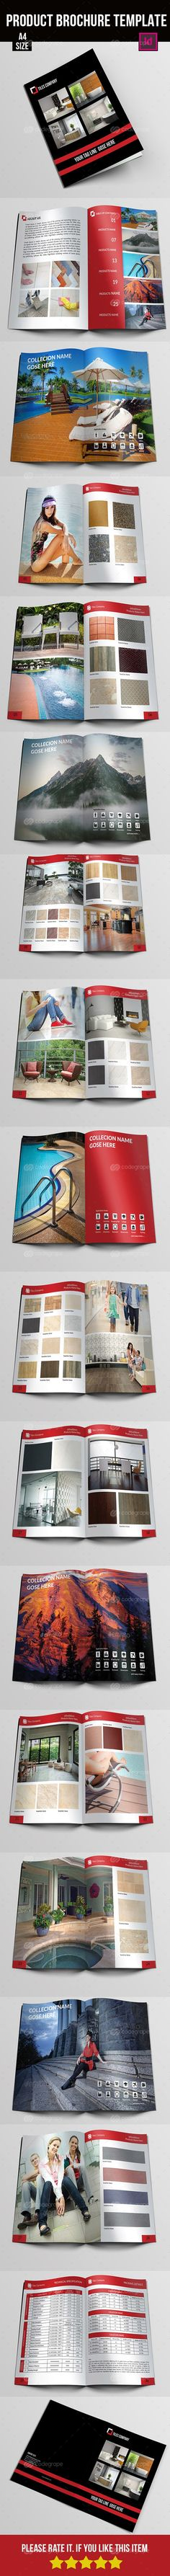 Tiles / Product Brochure - http://www.codegrape.com/item/tiles-product-brochure/7875